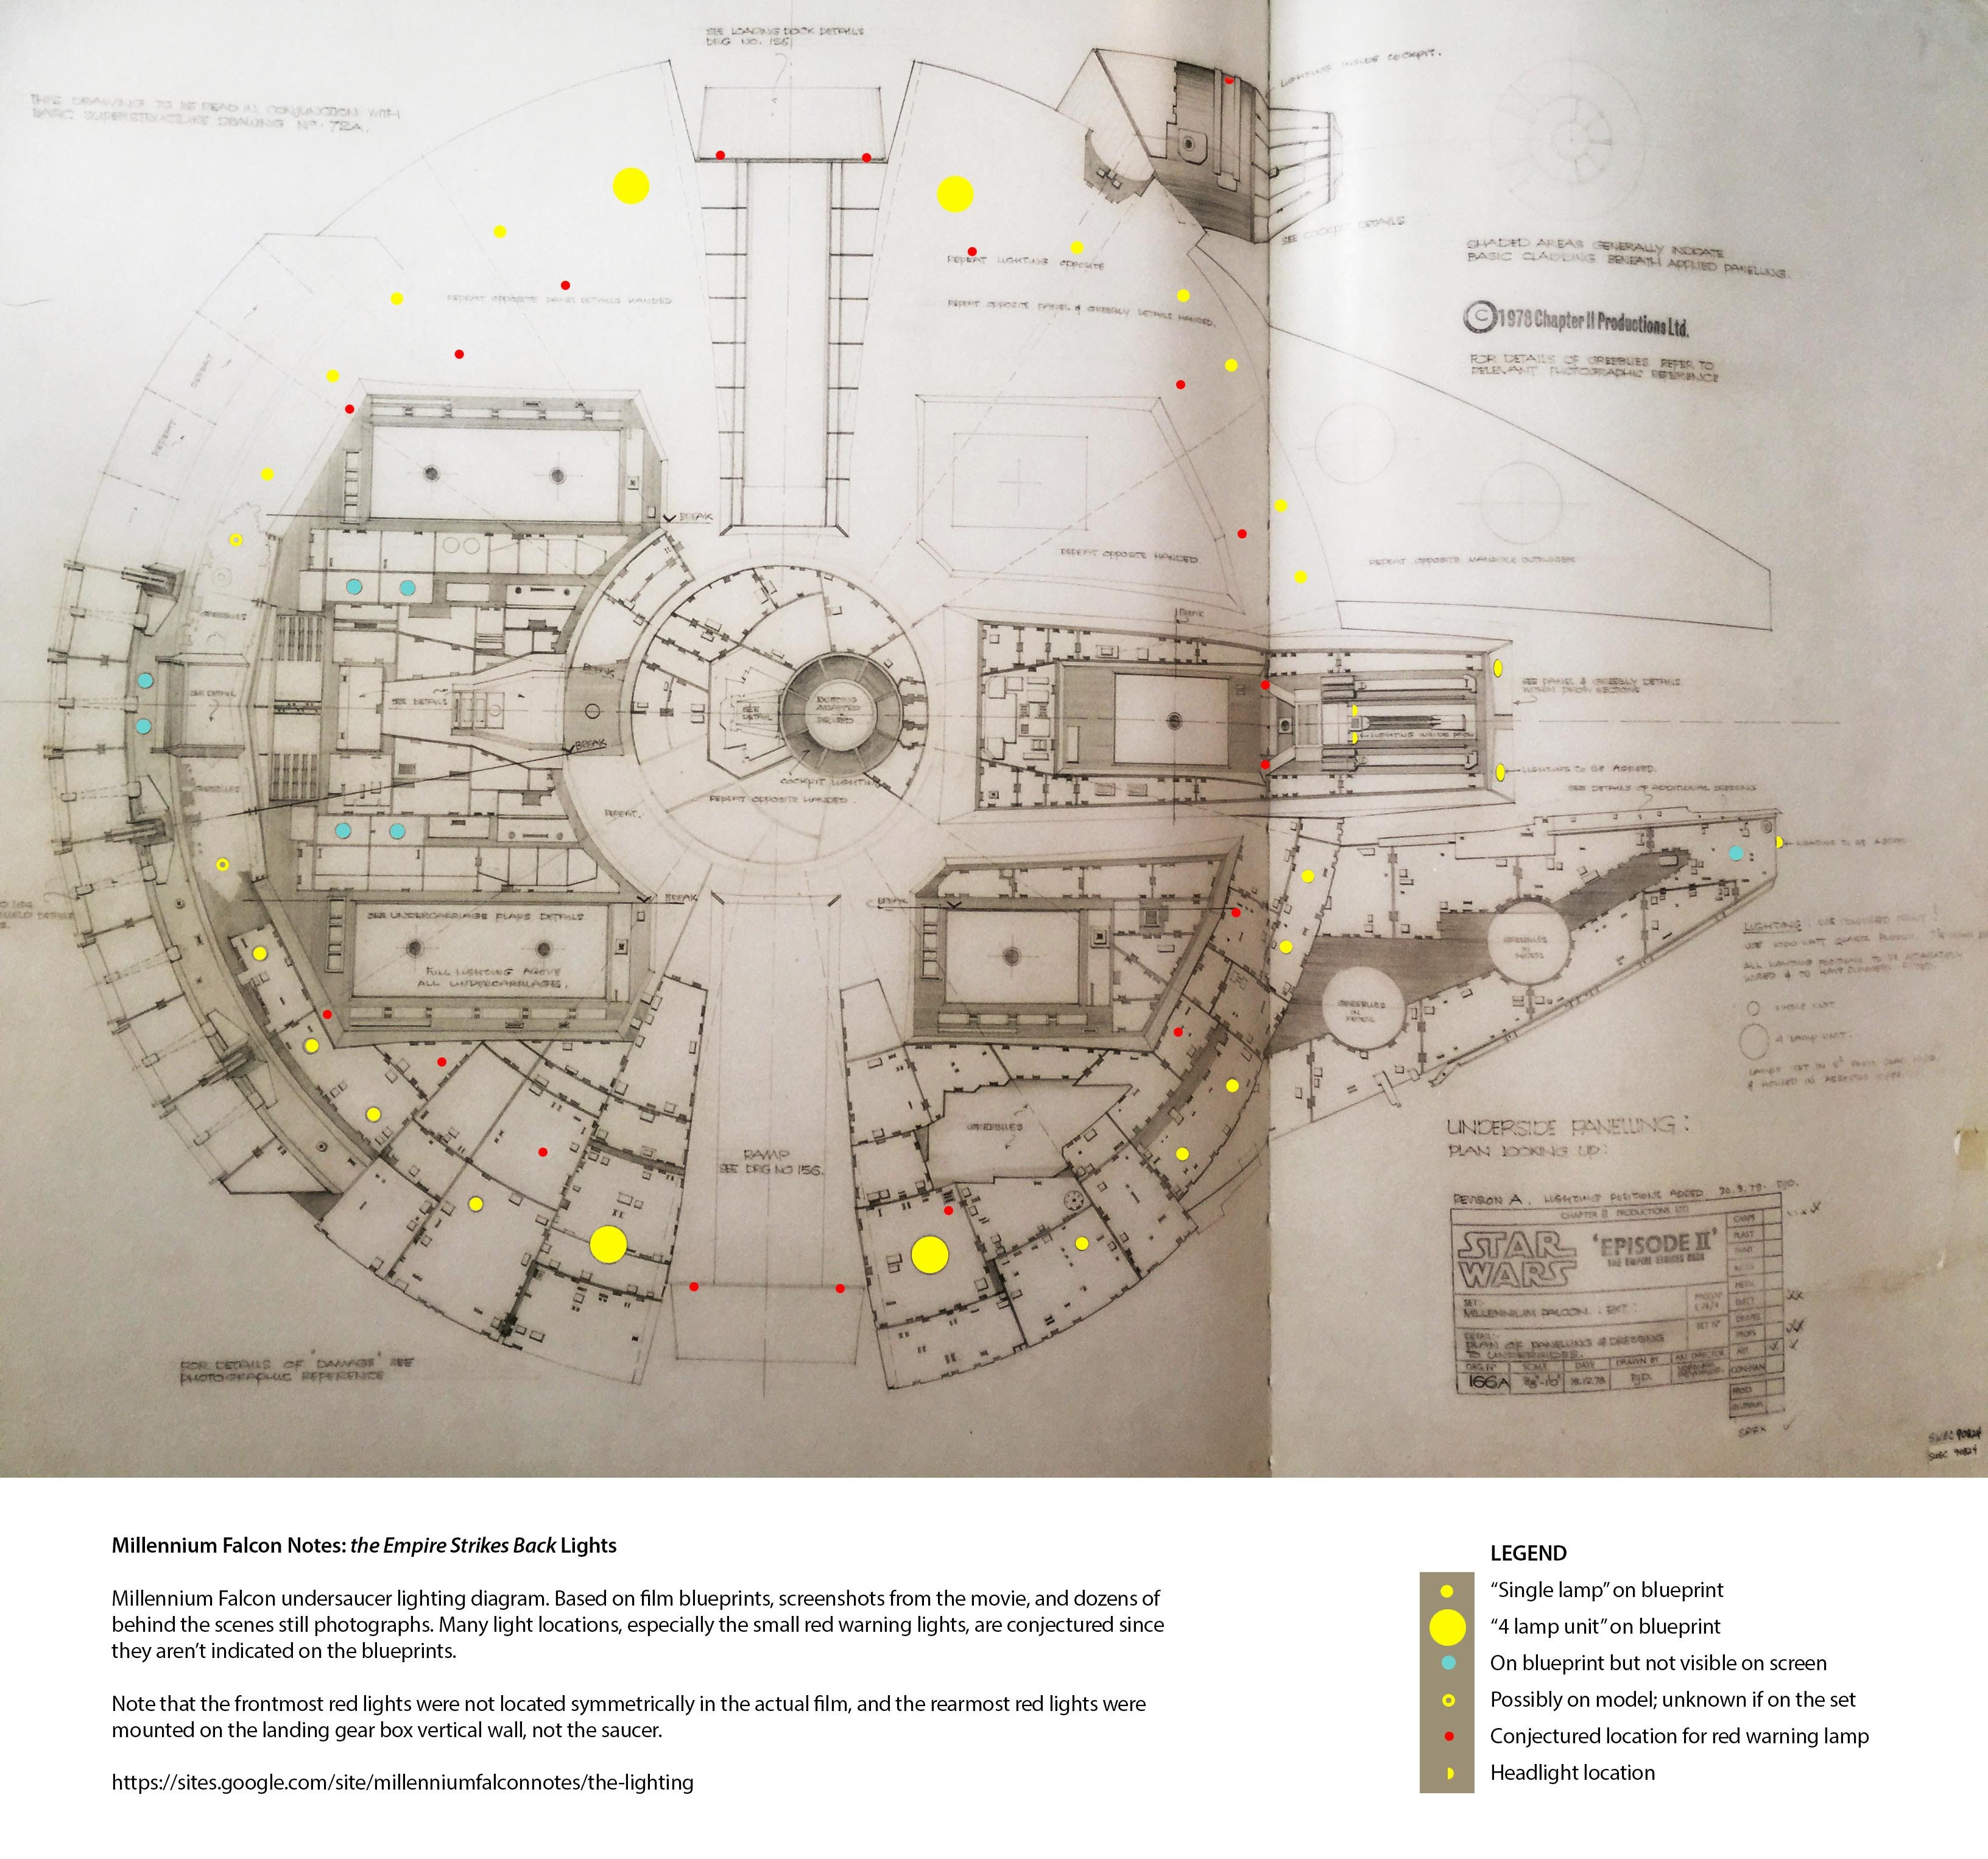 part iii the lighting millennium falcon notes lighting design diagram now, it's probably not 100% accurate, and it certainly differs from other people's theorized lighting diagrams this is in large part because the final set